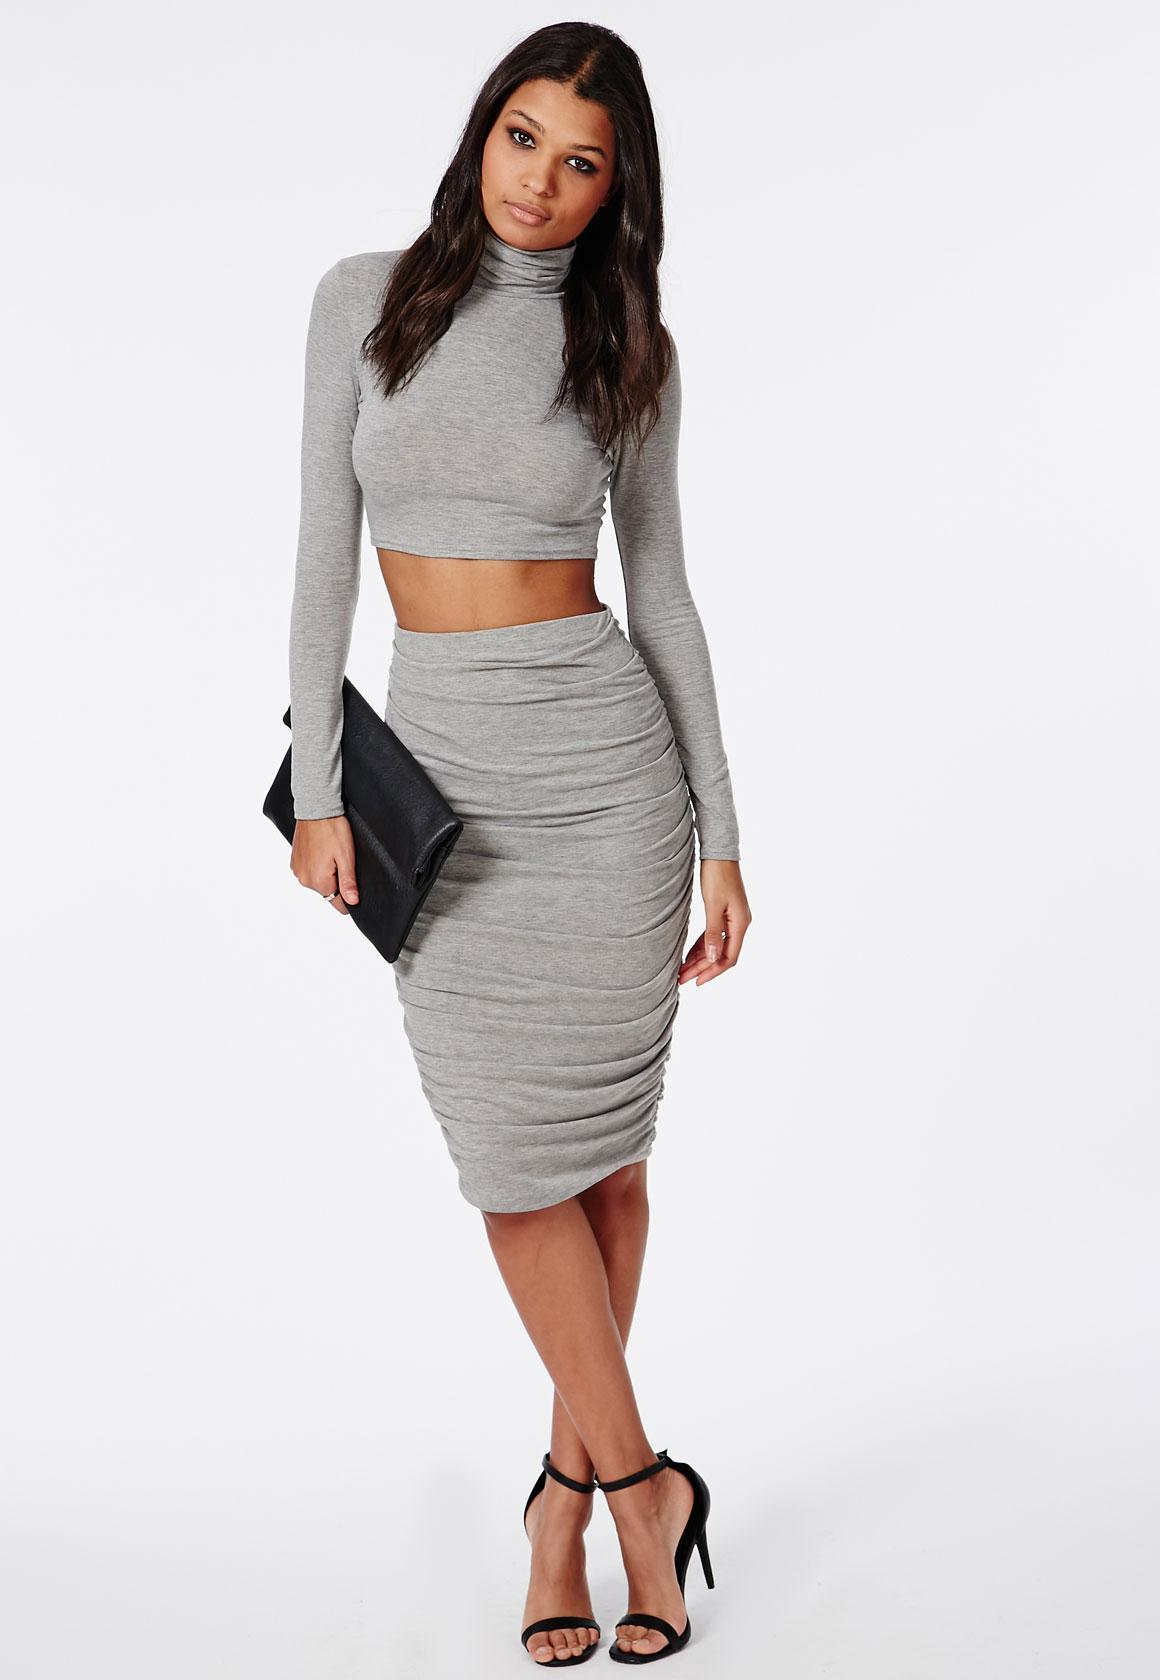 Ruched Seam Midi Skirt Grey 1 | Missguided Australia